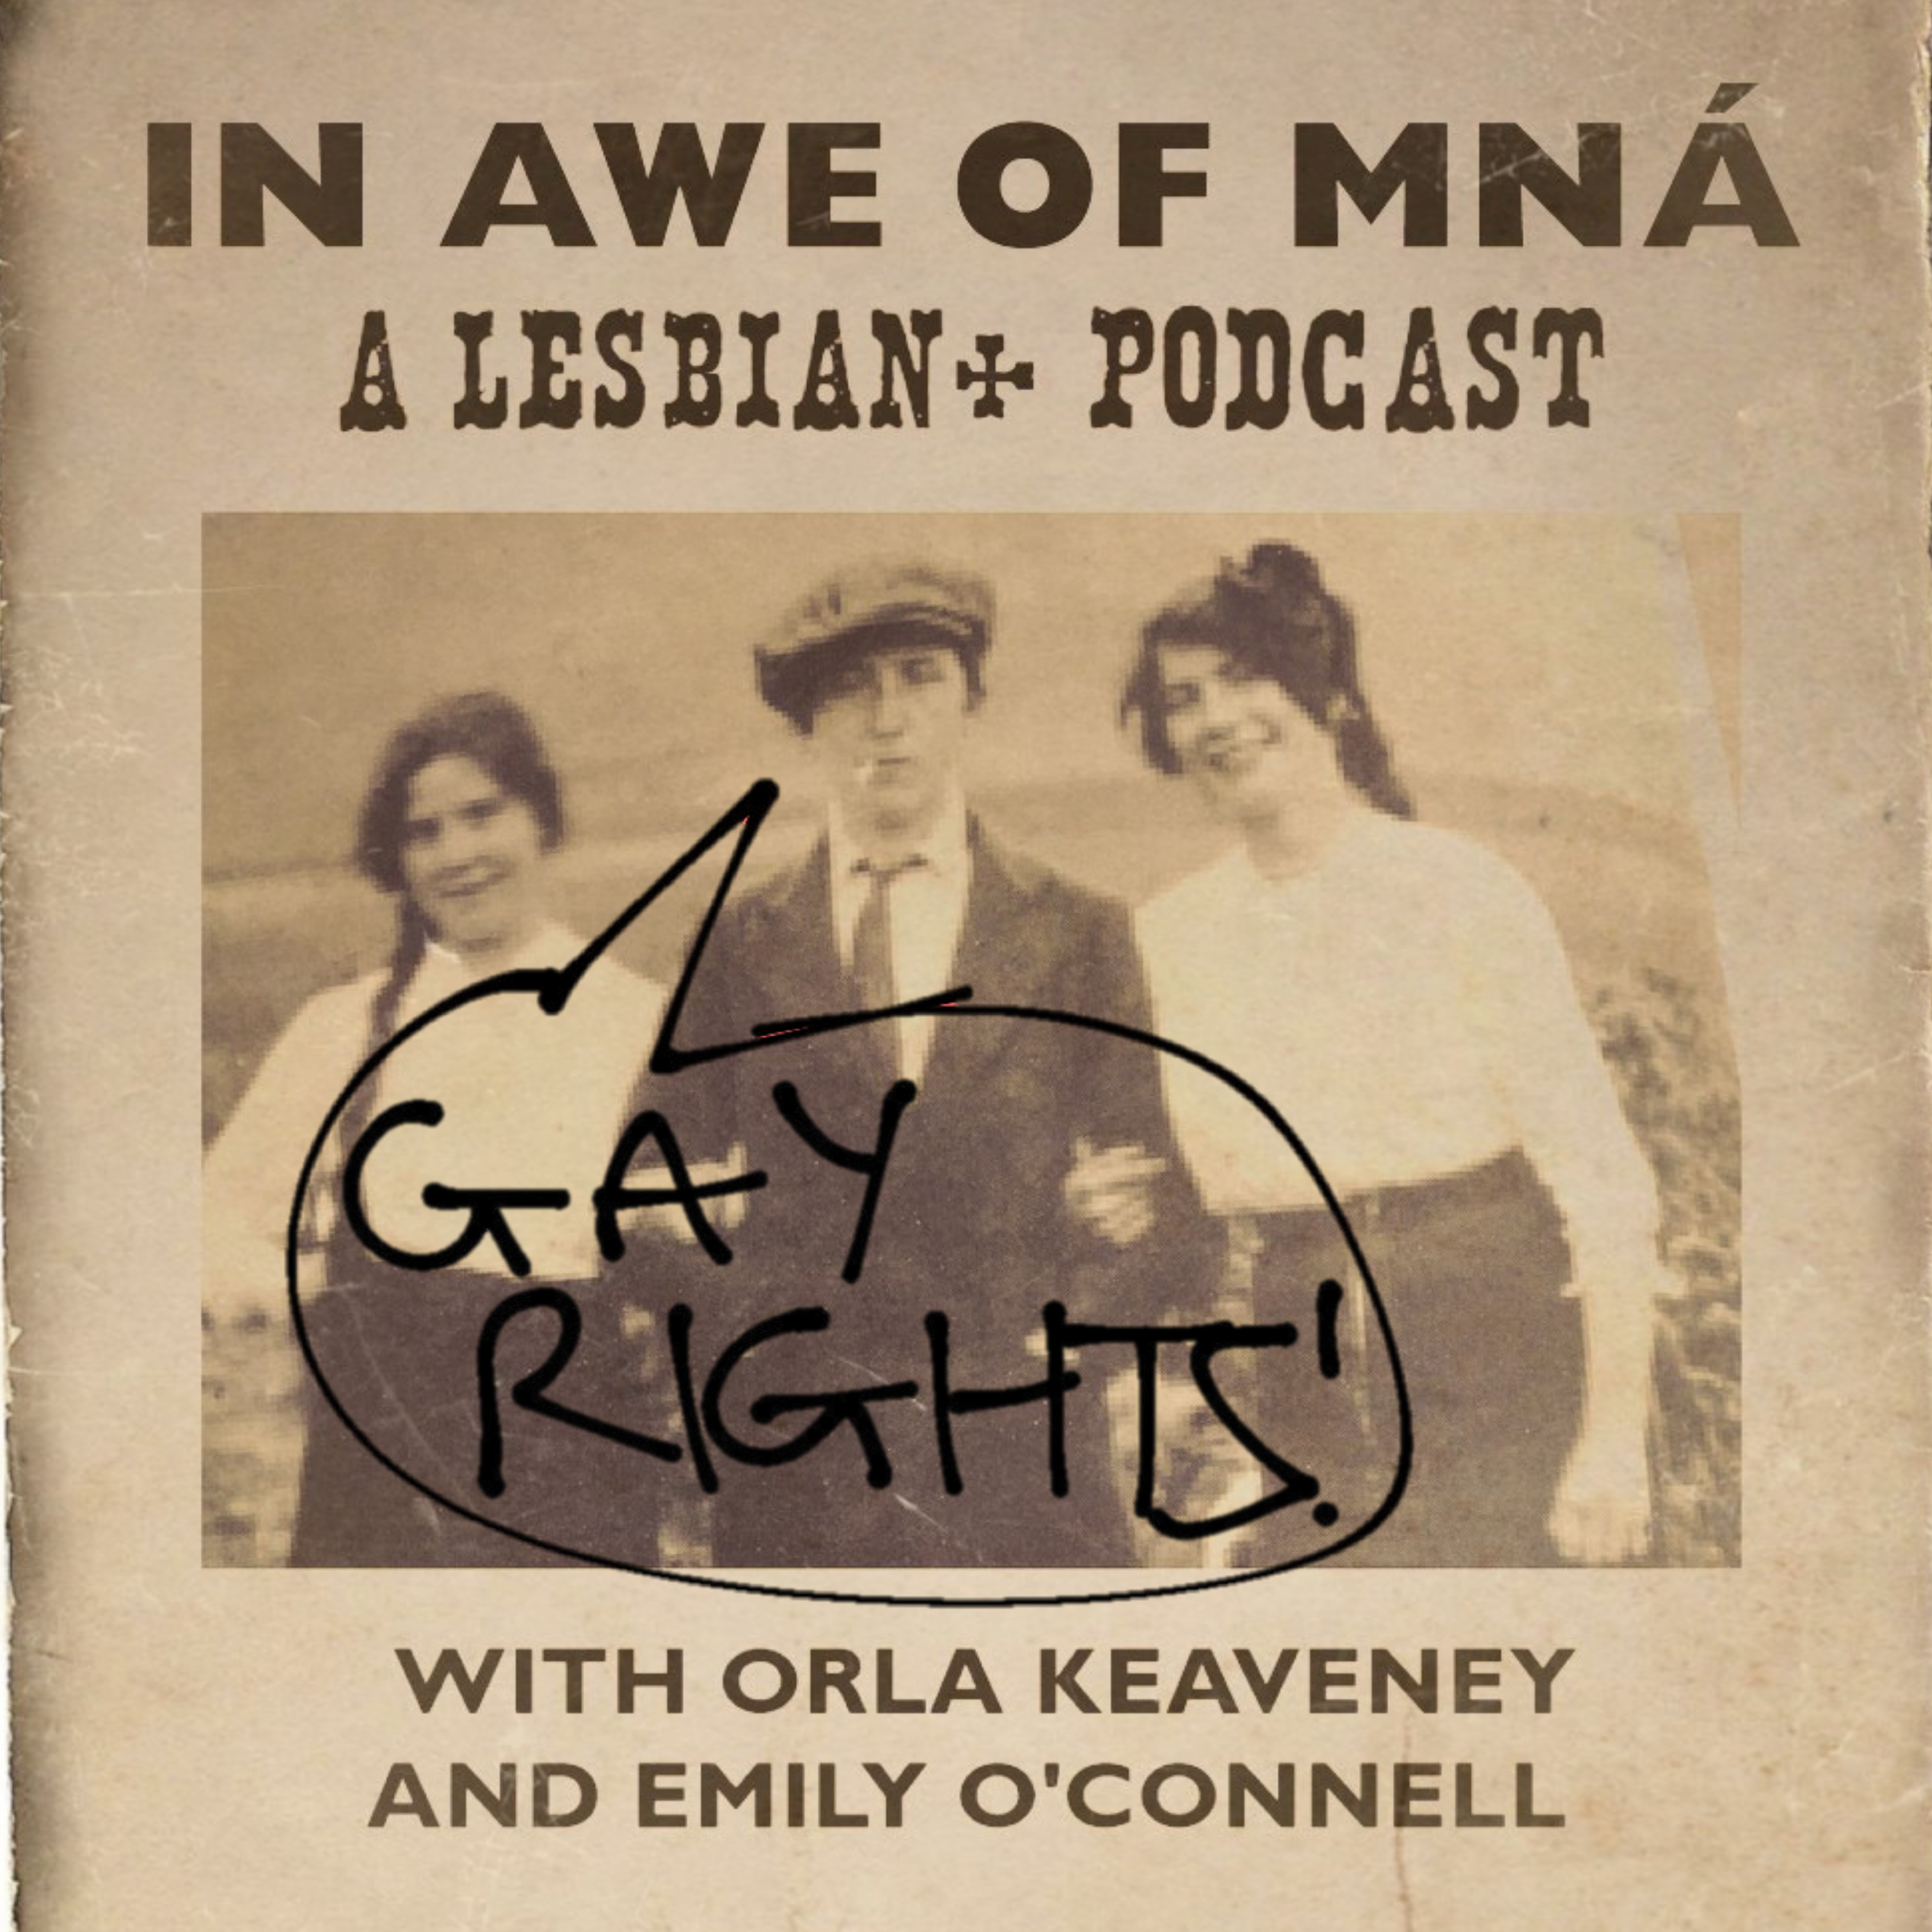 In Awe of Mná – A Lesbian+ Podcast